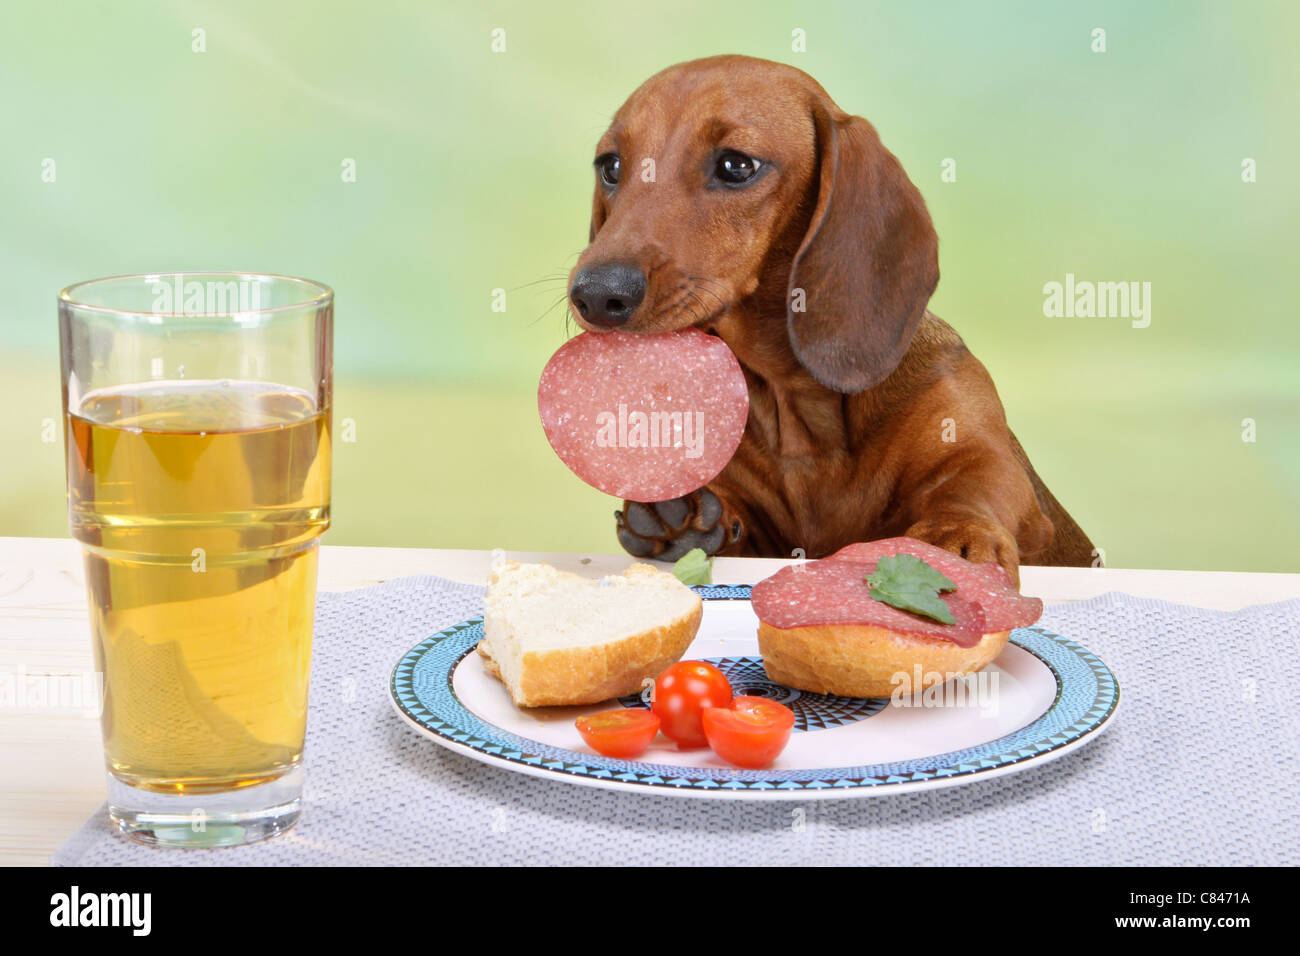 Dog Eating Food At The Table